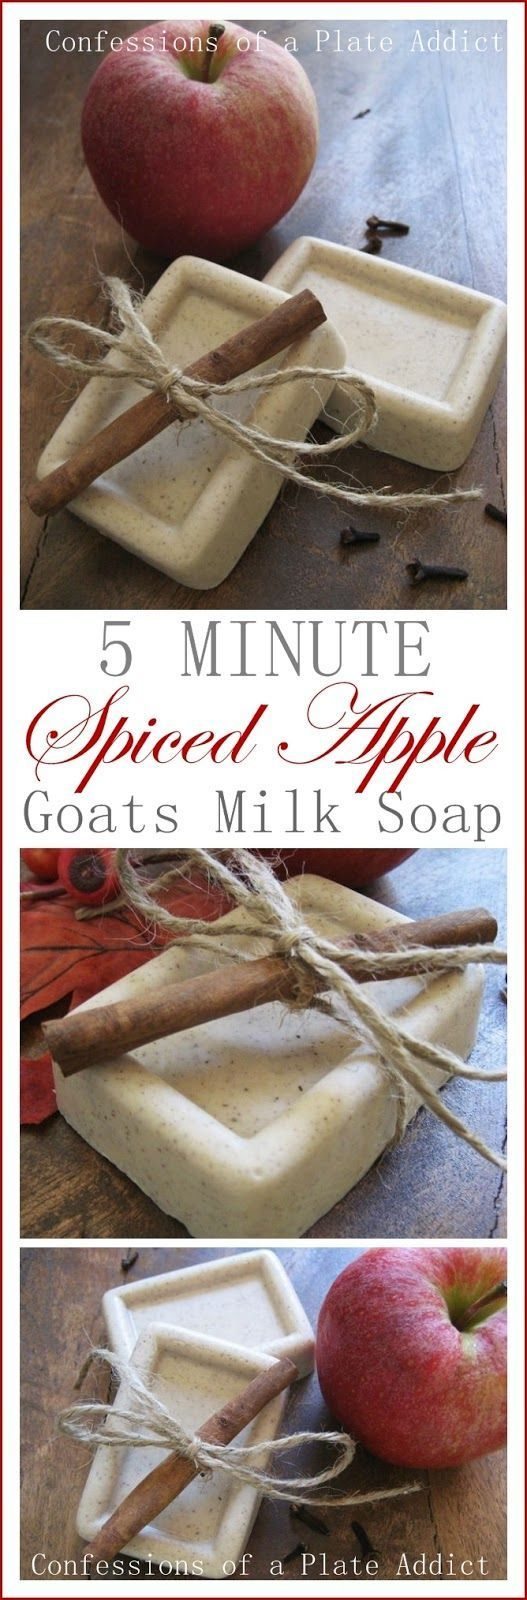 Five Minute Spiced Apple Goats Milk Soap Homemade soap